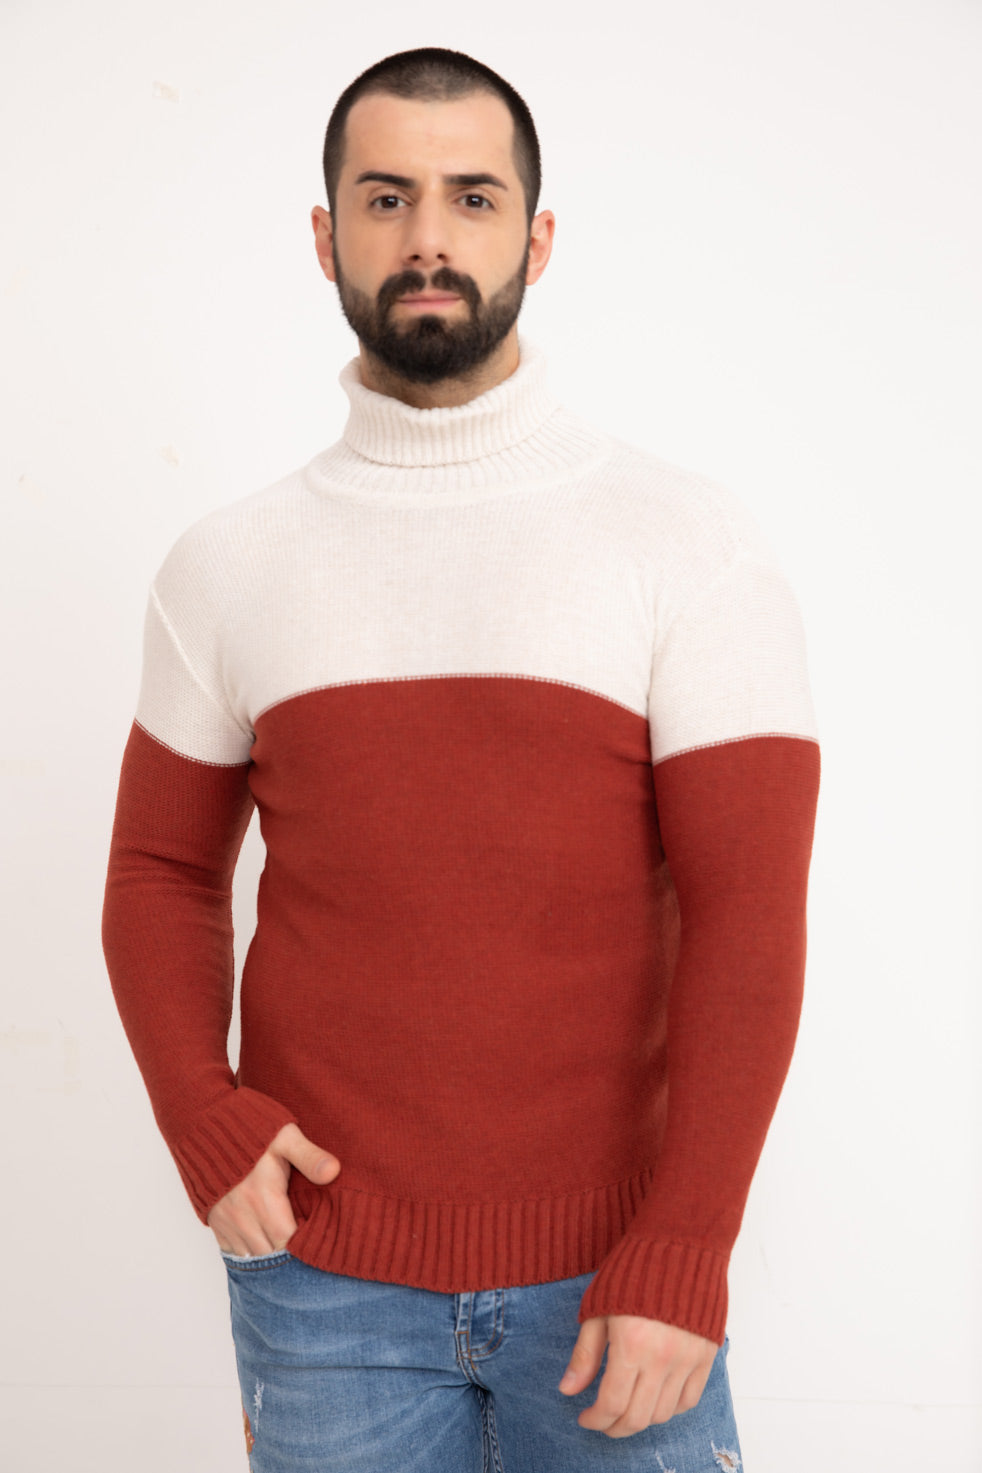 Cinnamon Double Color Neck Men's Knitwear Sweater